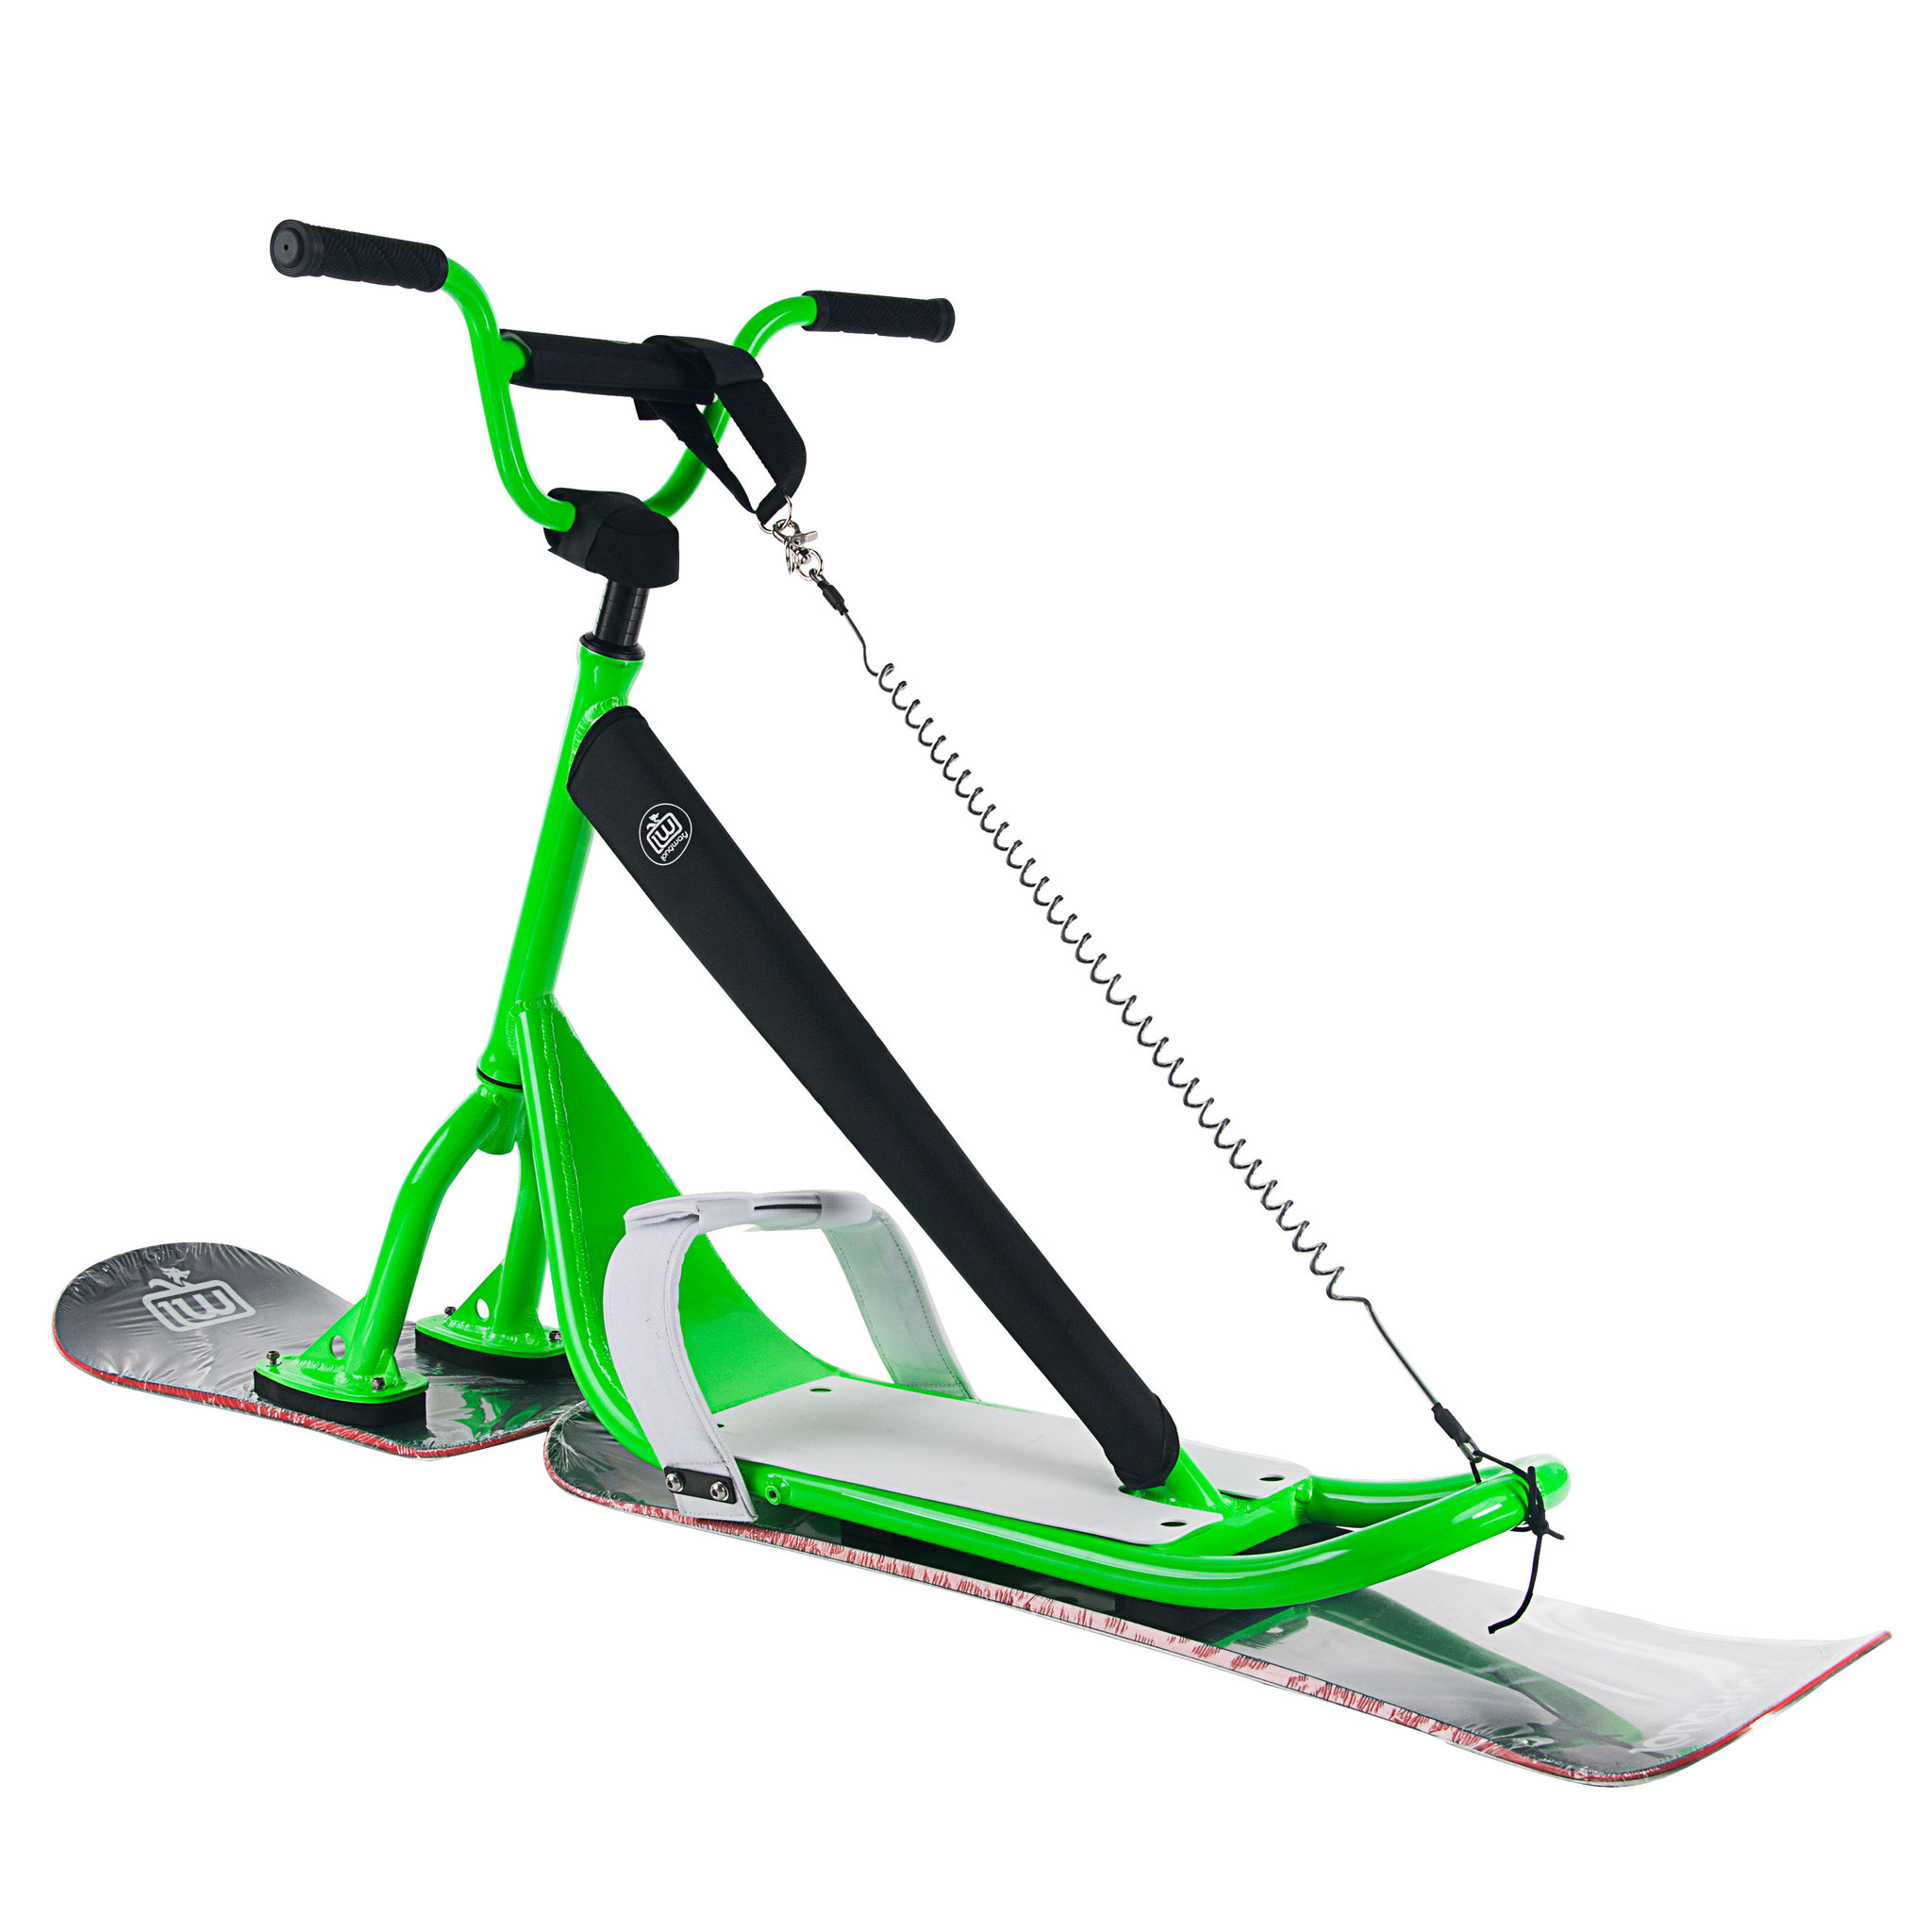 Longway Sports Snowscoot Suilbikes green 1